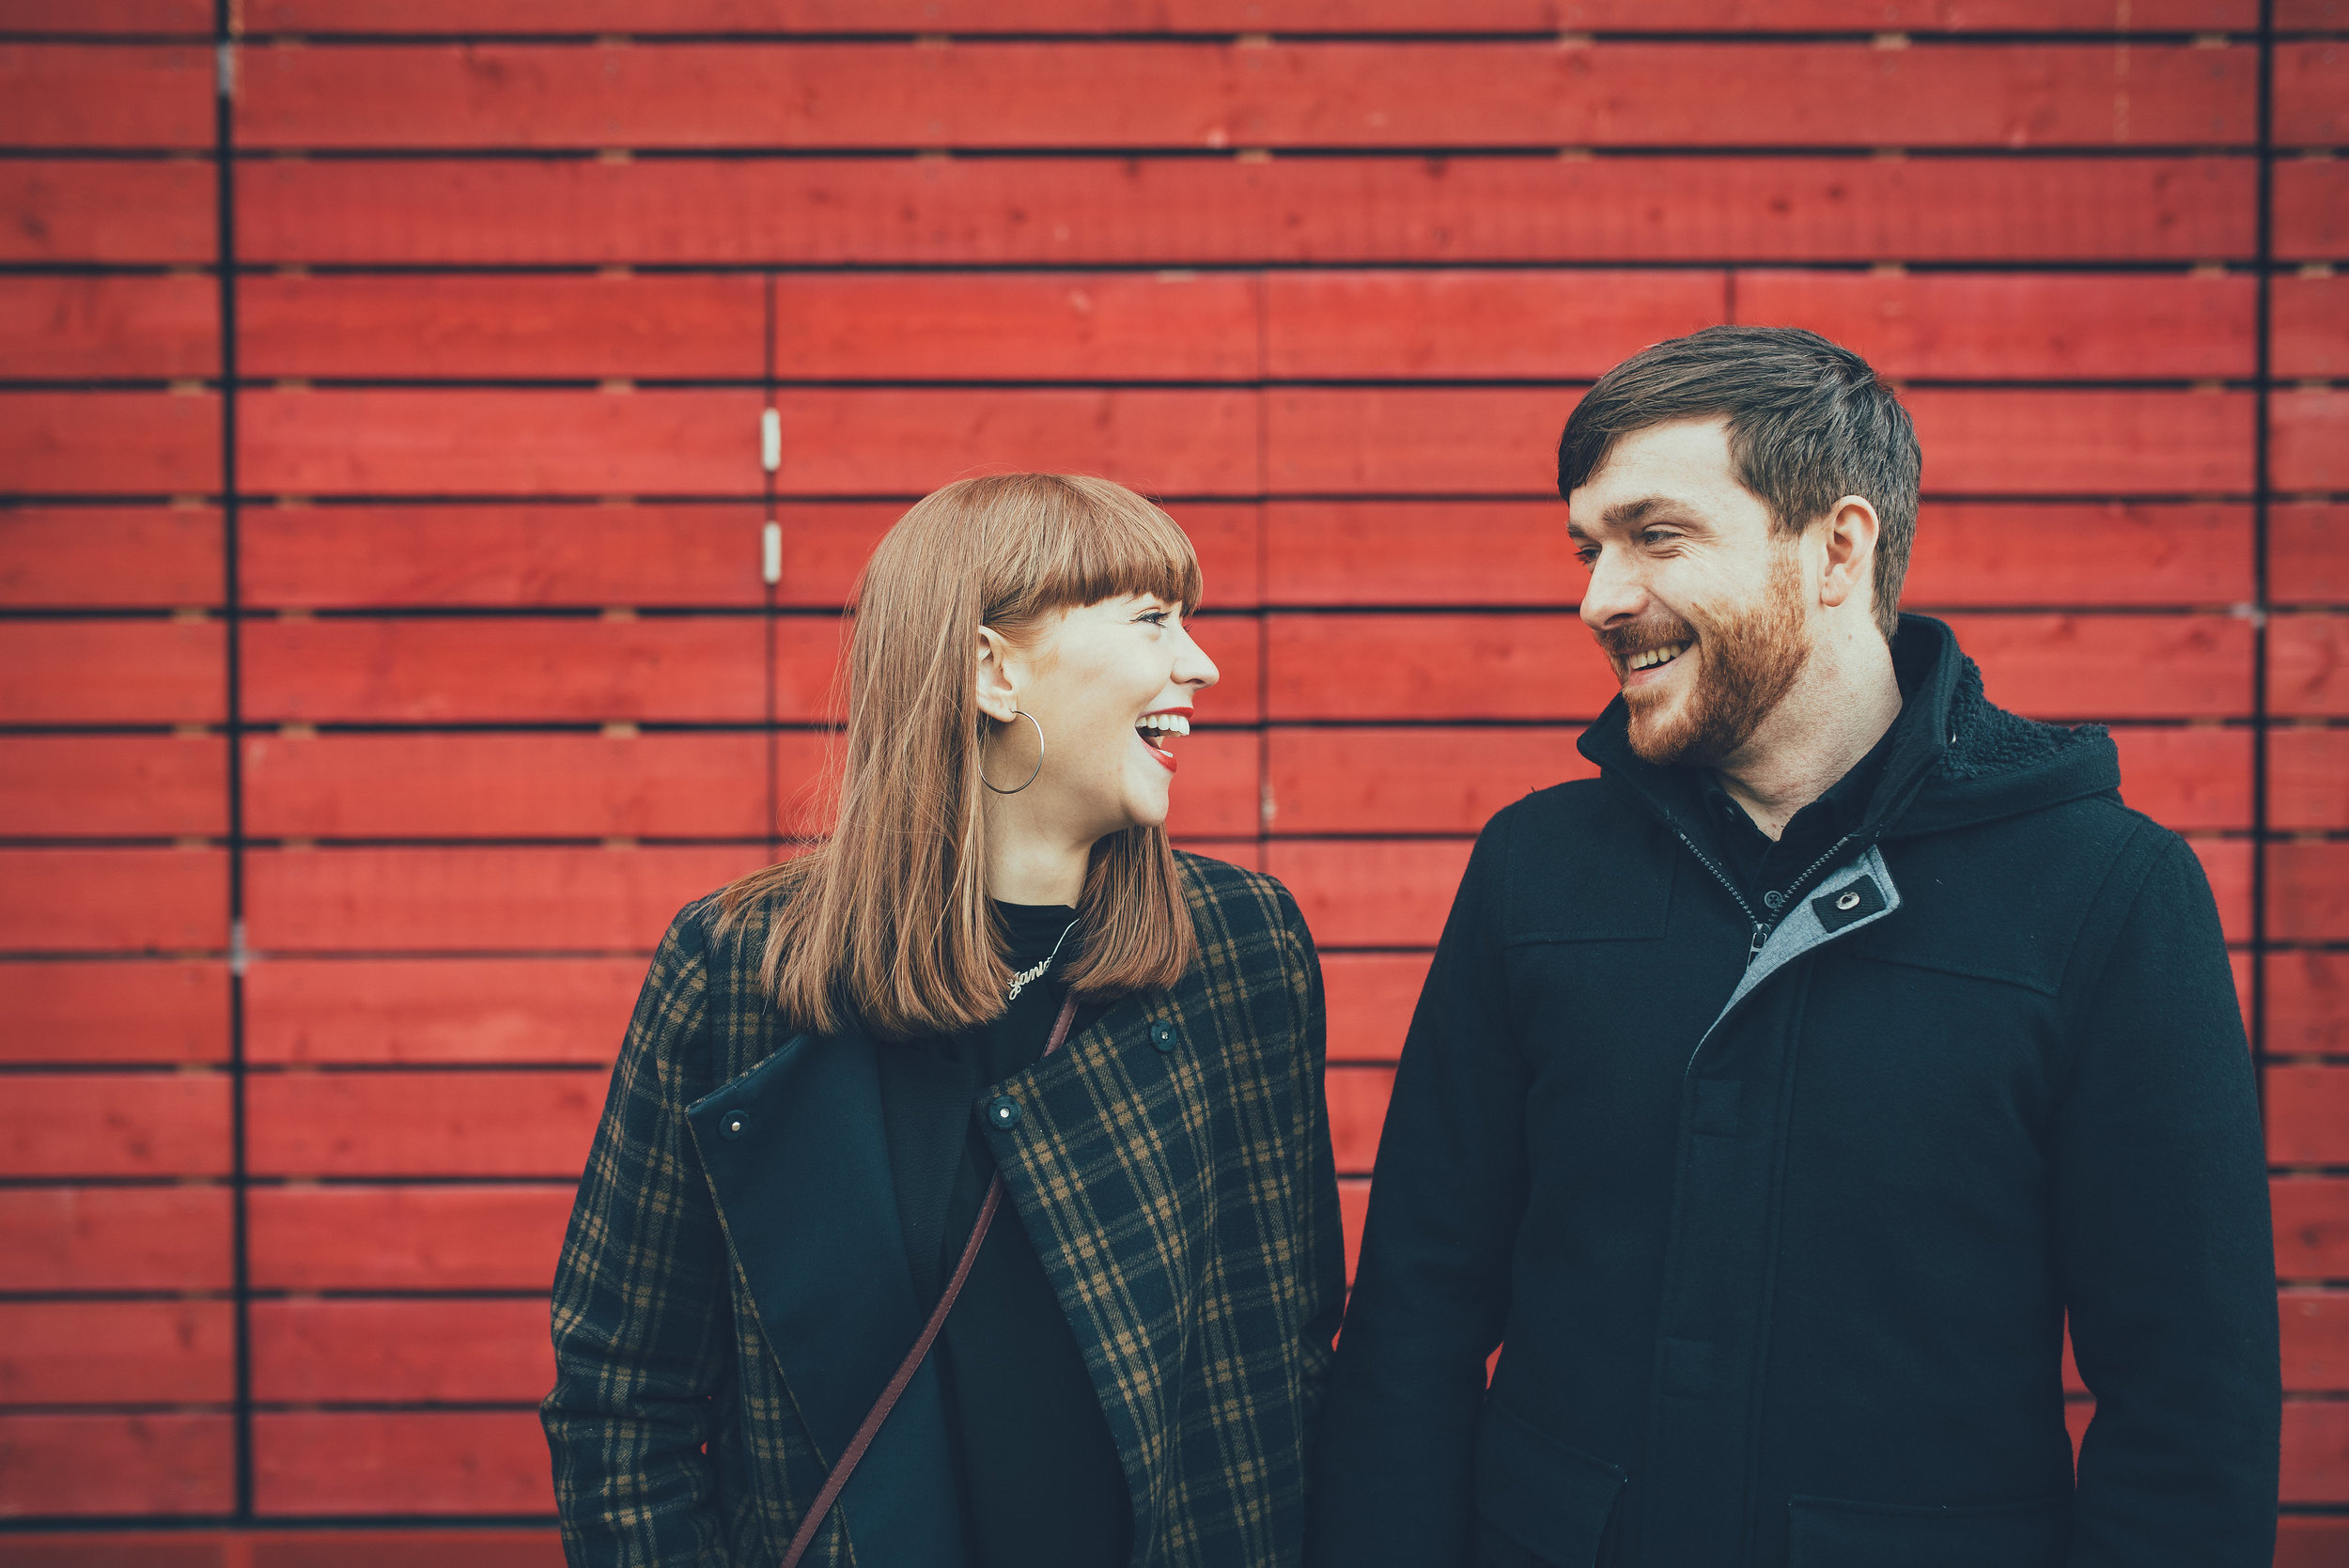 Couple laughing in front of red wall at the National Theatre London